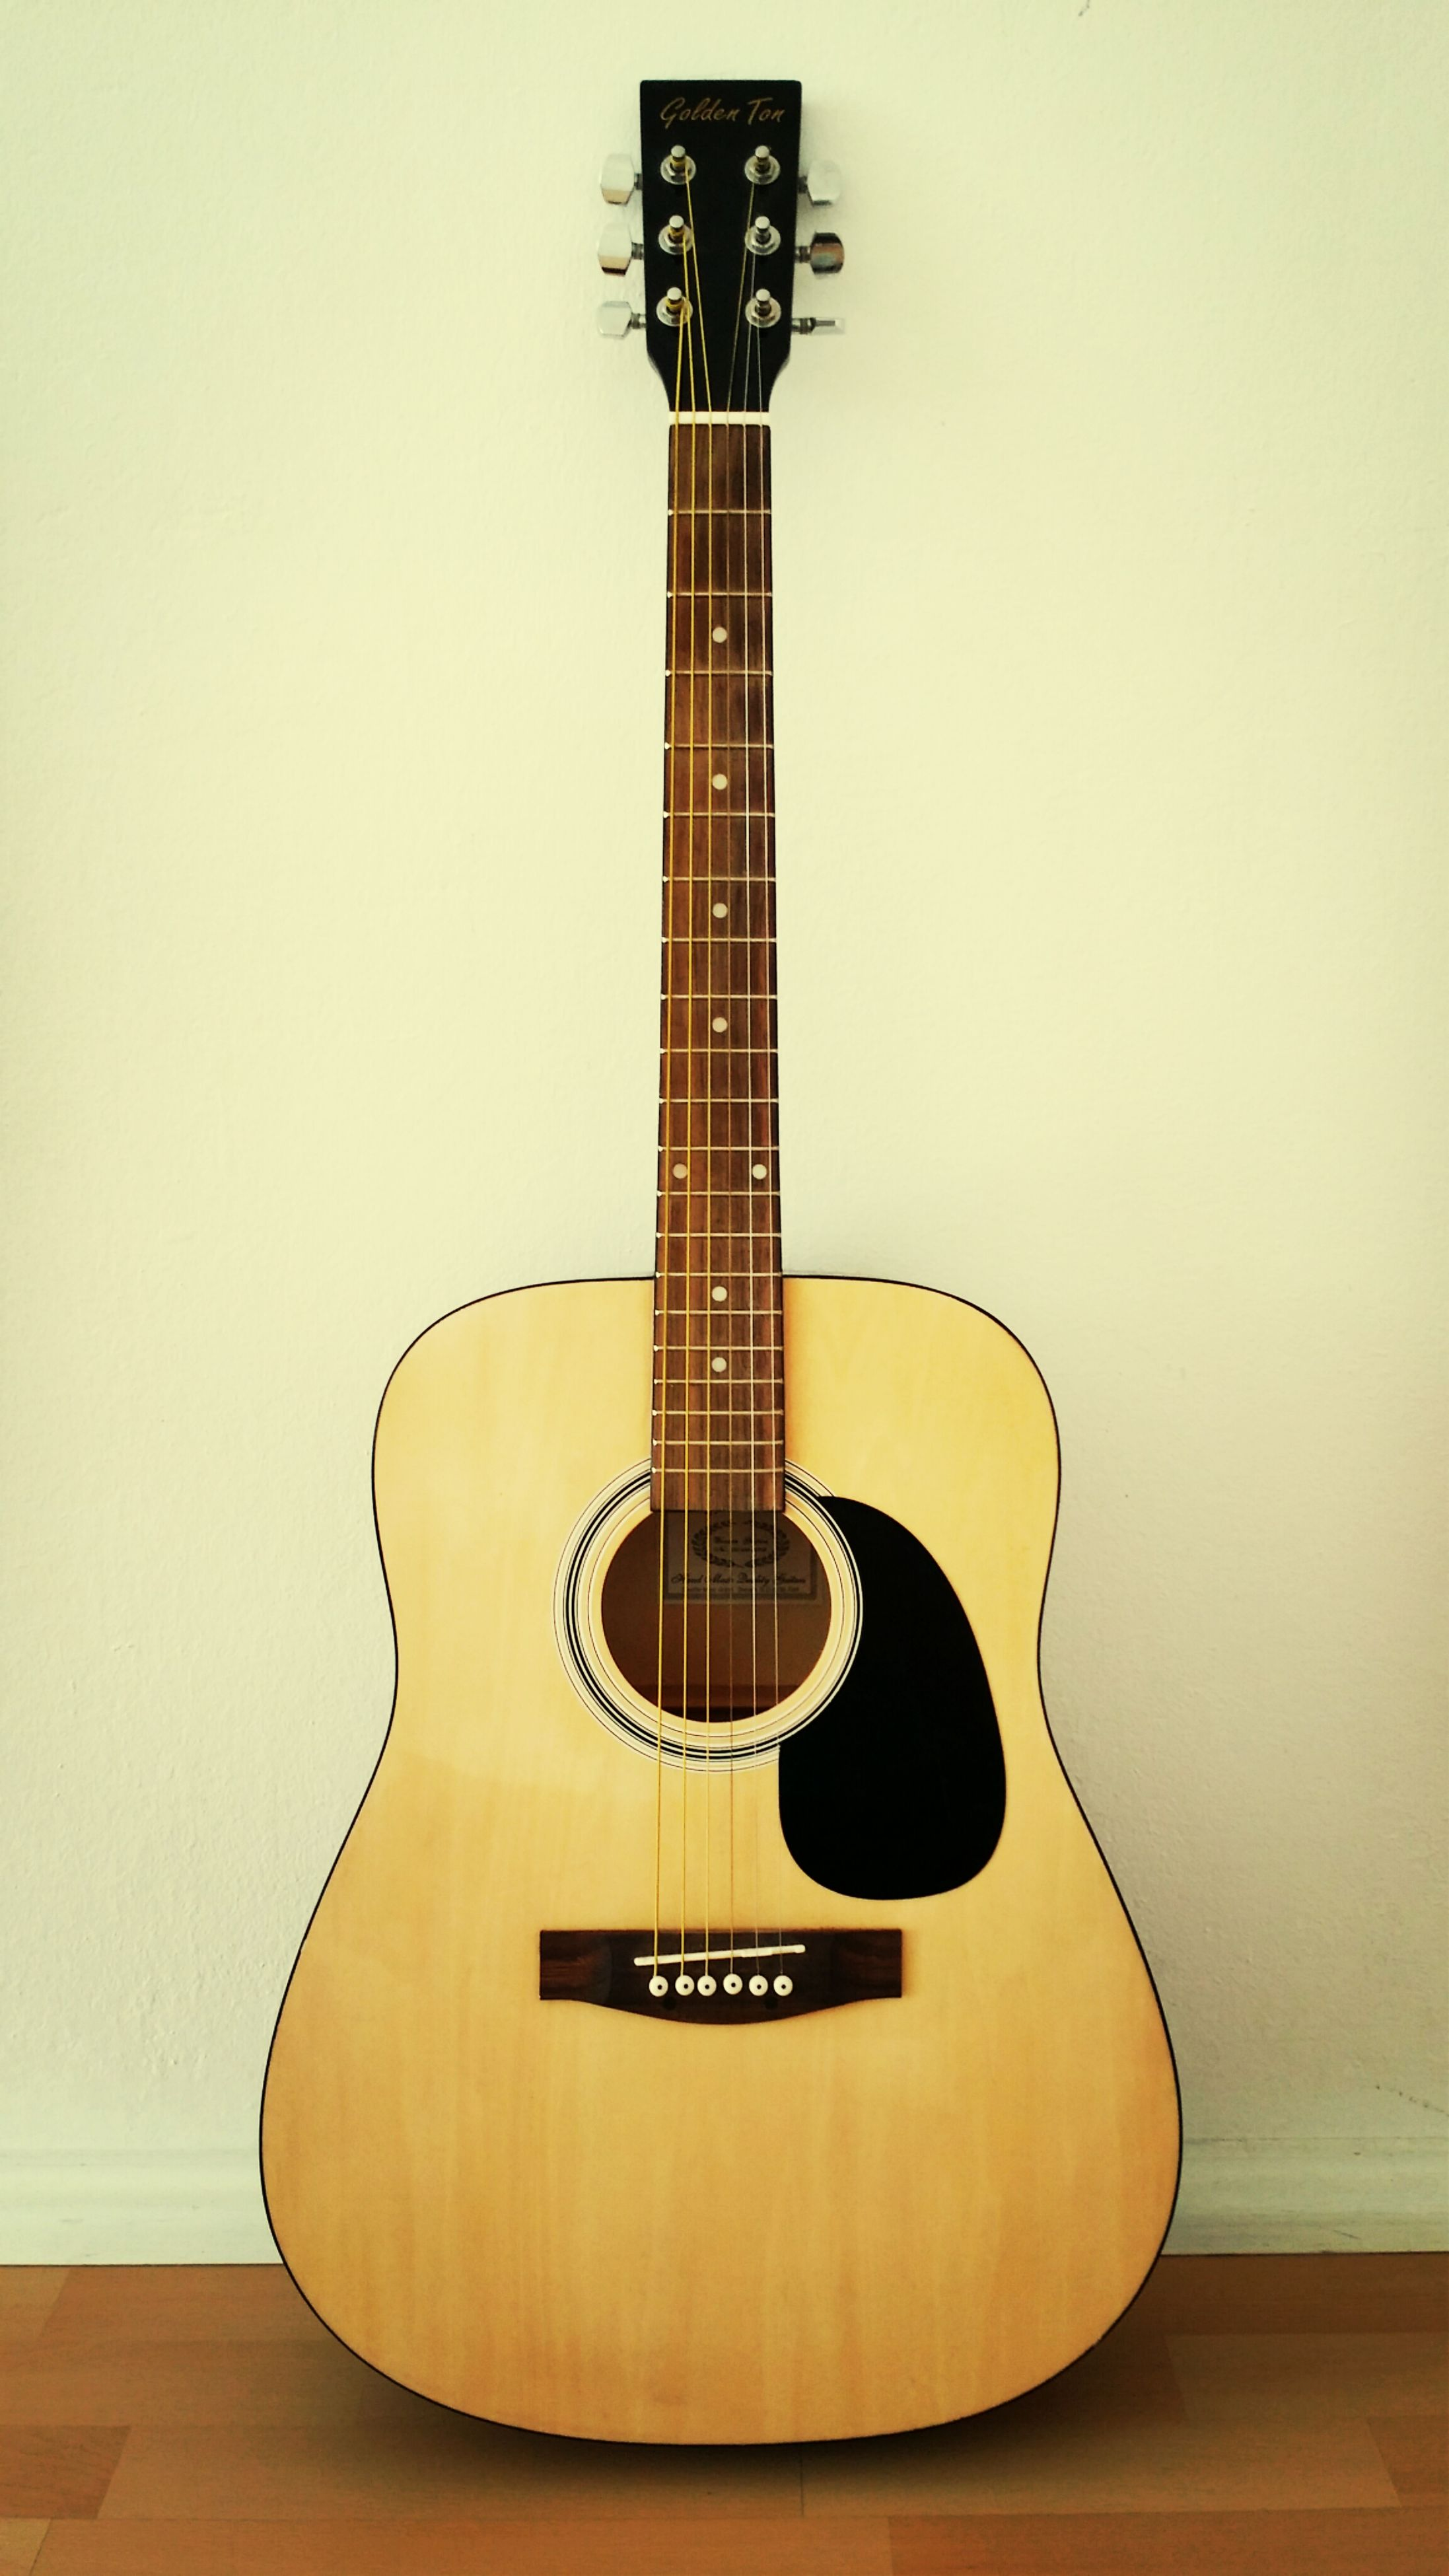 musical instrument, music, guitar, arts culture and entertainment, indoors, musical instrument string, musical equipment, communication, acoustic guitar, string instrument, still life, single object, close-up, illuminated, technology, wall - building feature, studio shot, low angle view, wood - material, no people